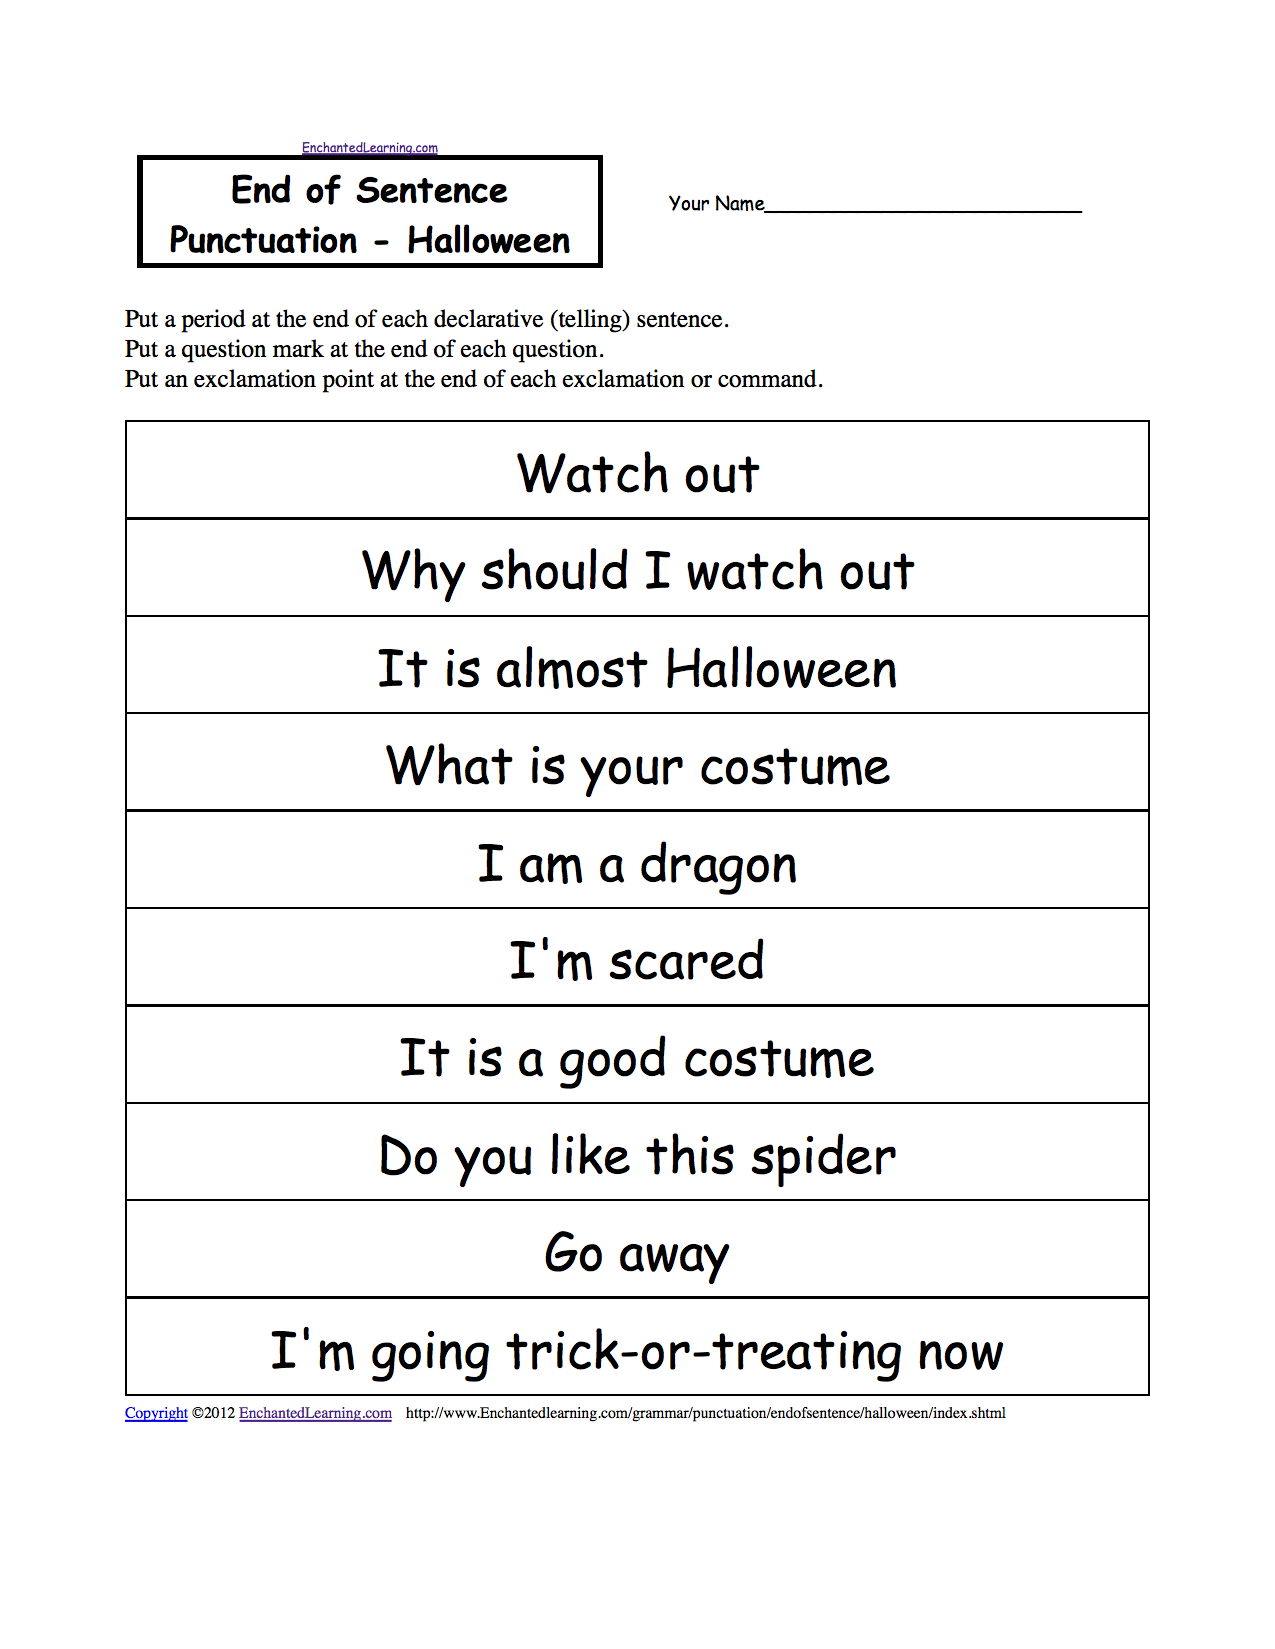 Free Worksheet Free Printable Punctuation Worksheets end of sentence punctuation printable worksheets halloween